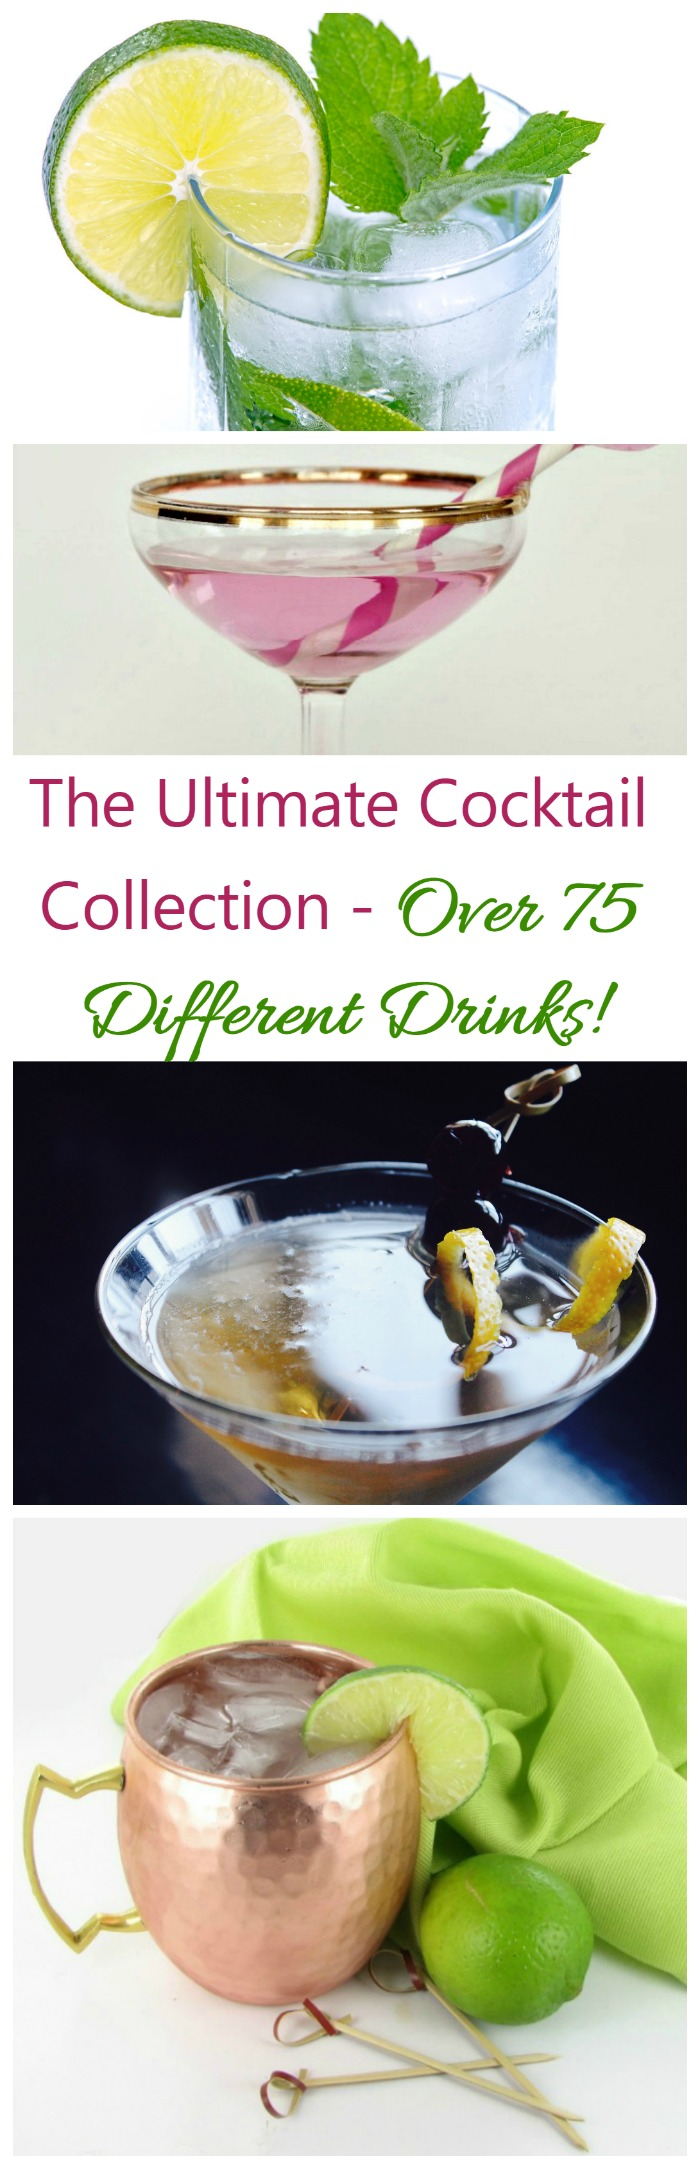 The ultimate collection of cocktail recipes. Over 75 timeless, fun drinks for every season and every holiday. Belly up to the Bar. 4 21+